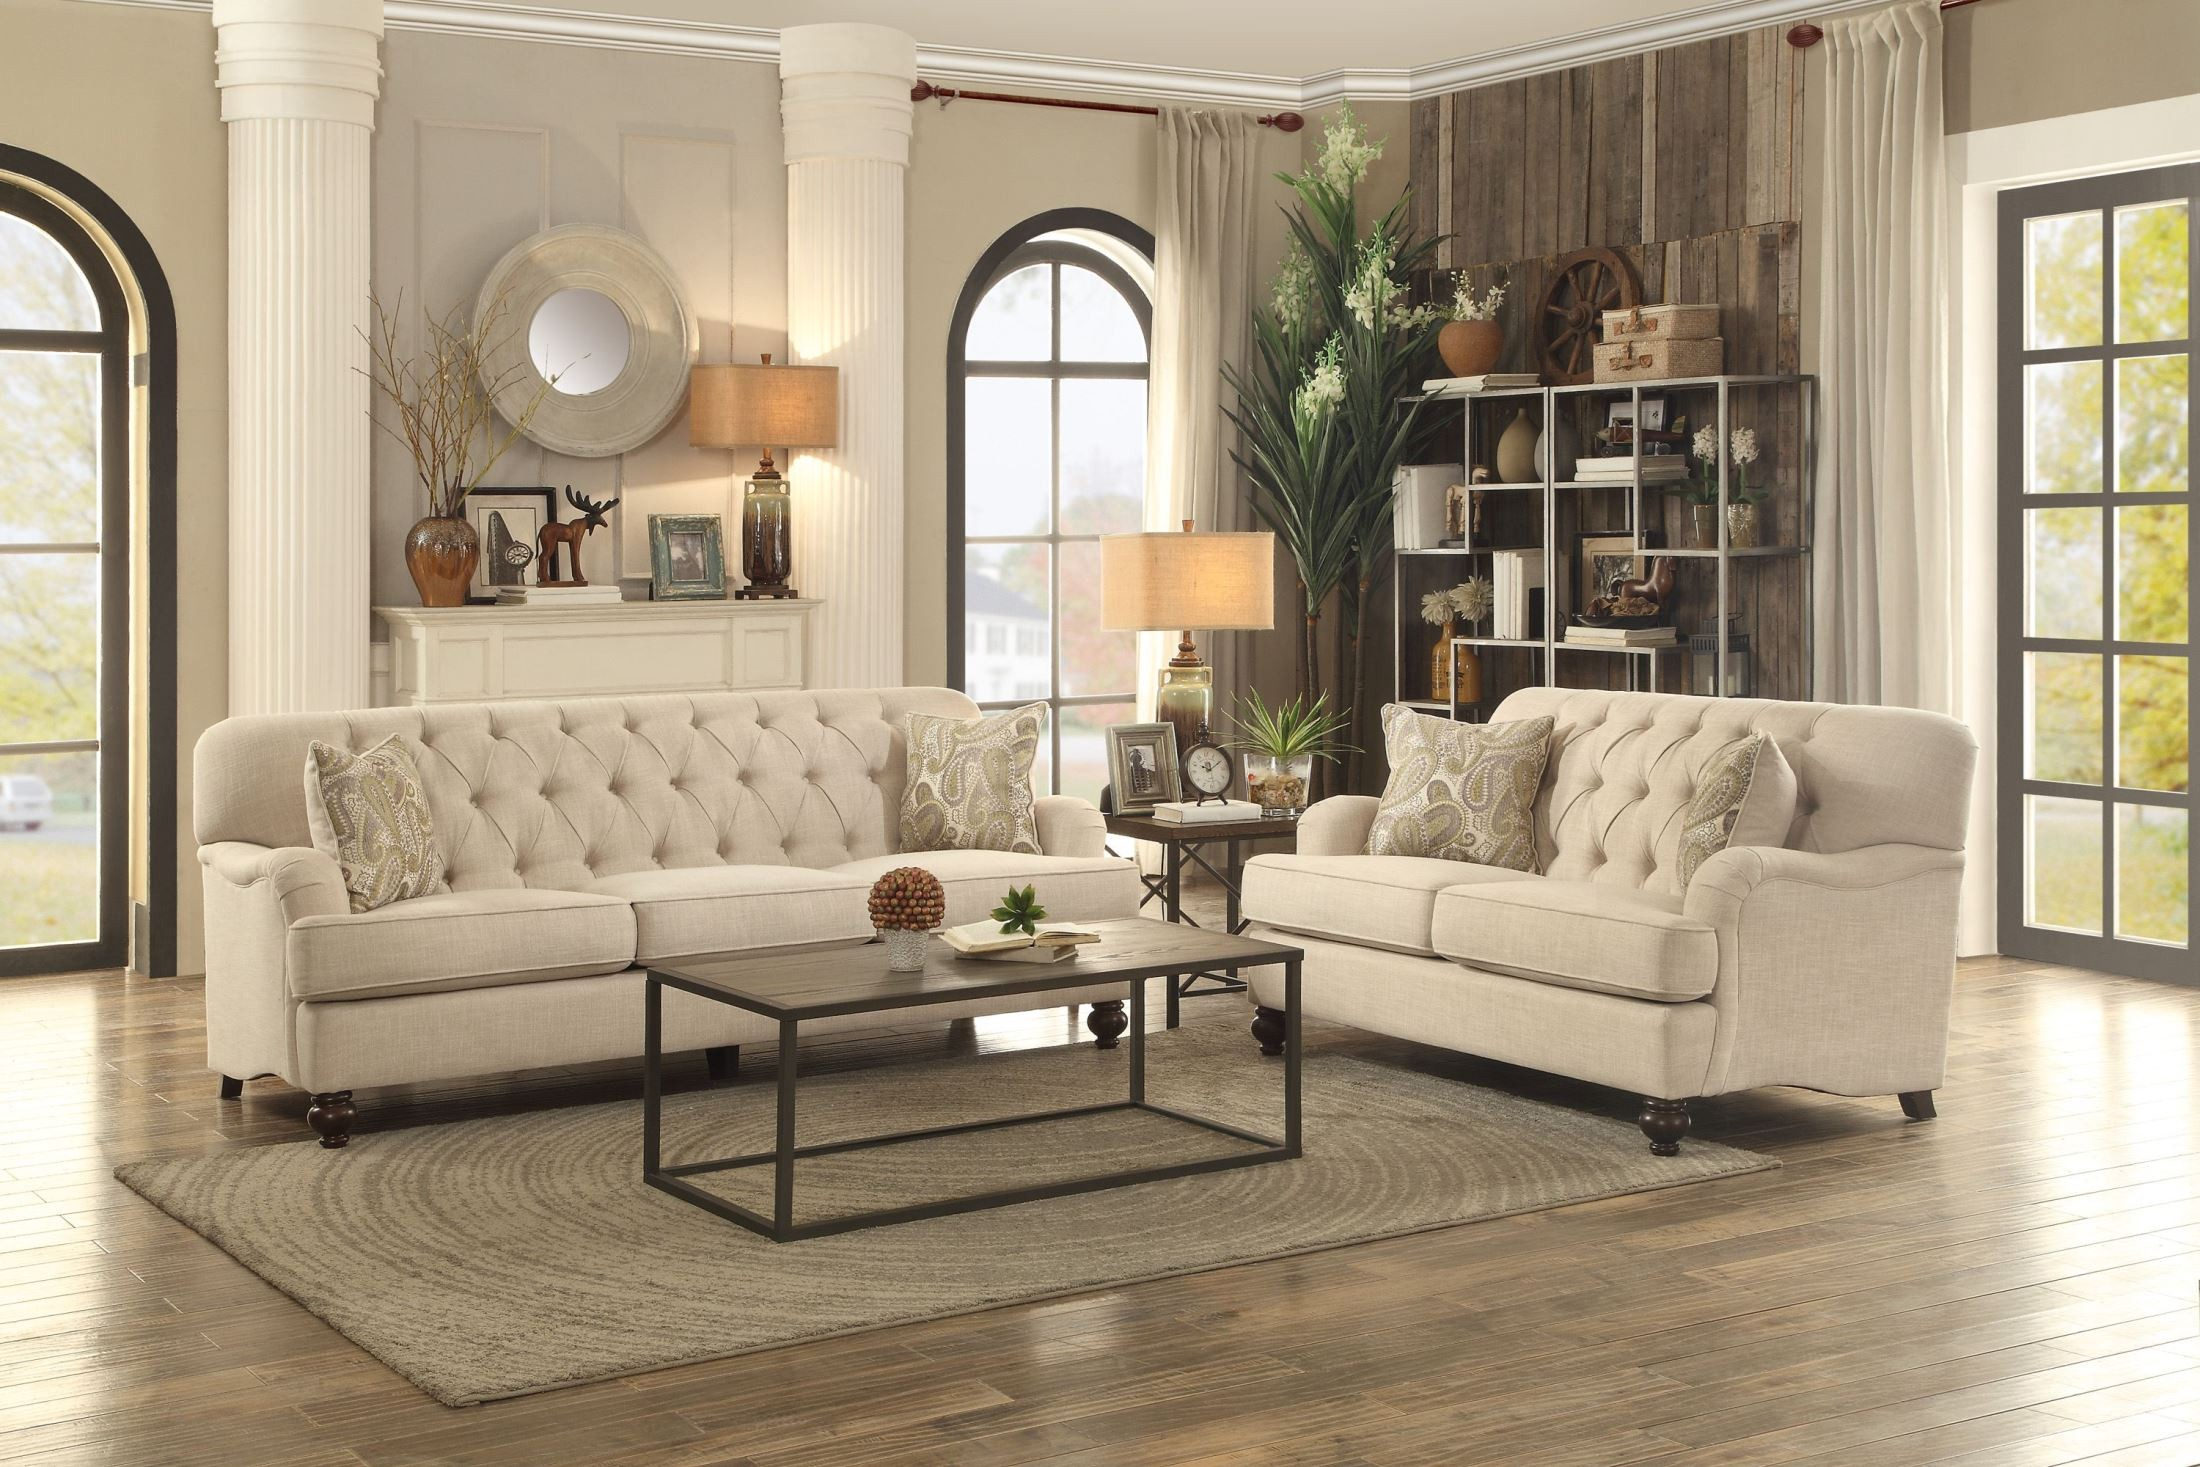 Clemencia Natural Tone Living Room Set From Homelegance Coleman  # Muebles Nicasio Orono